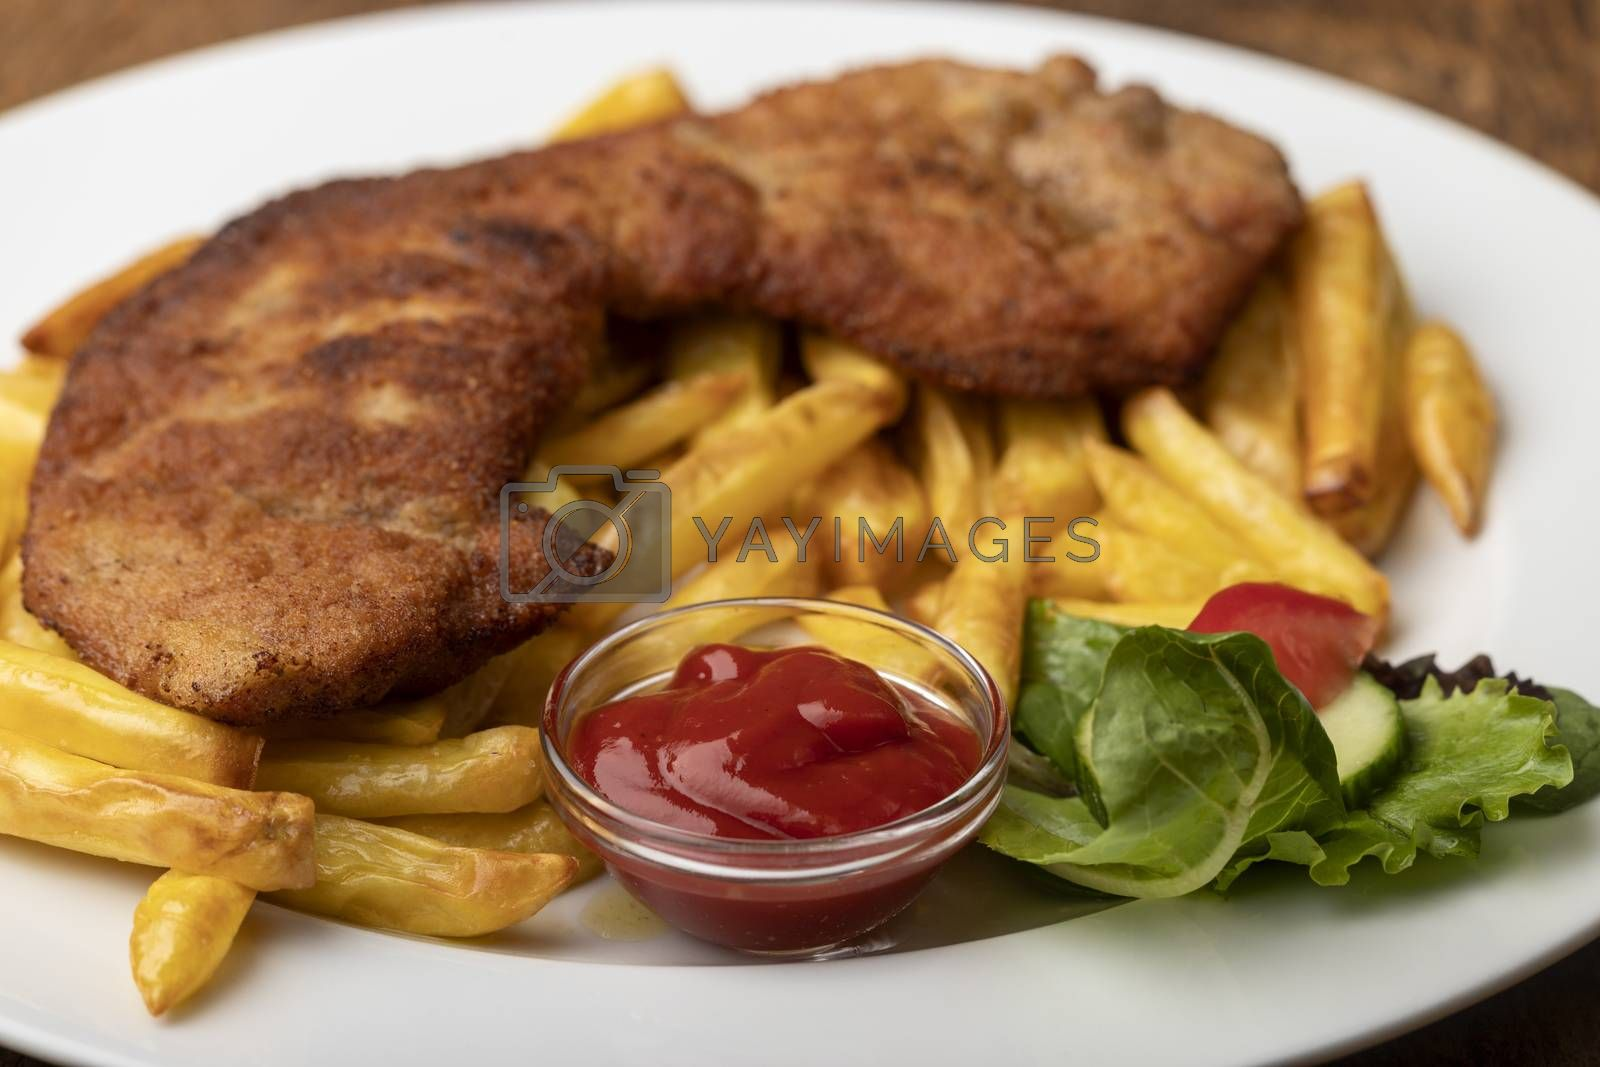 wiener schnitzel with french fries by bernjuer